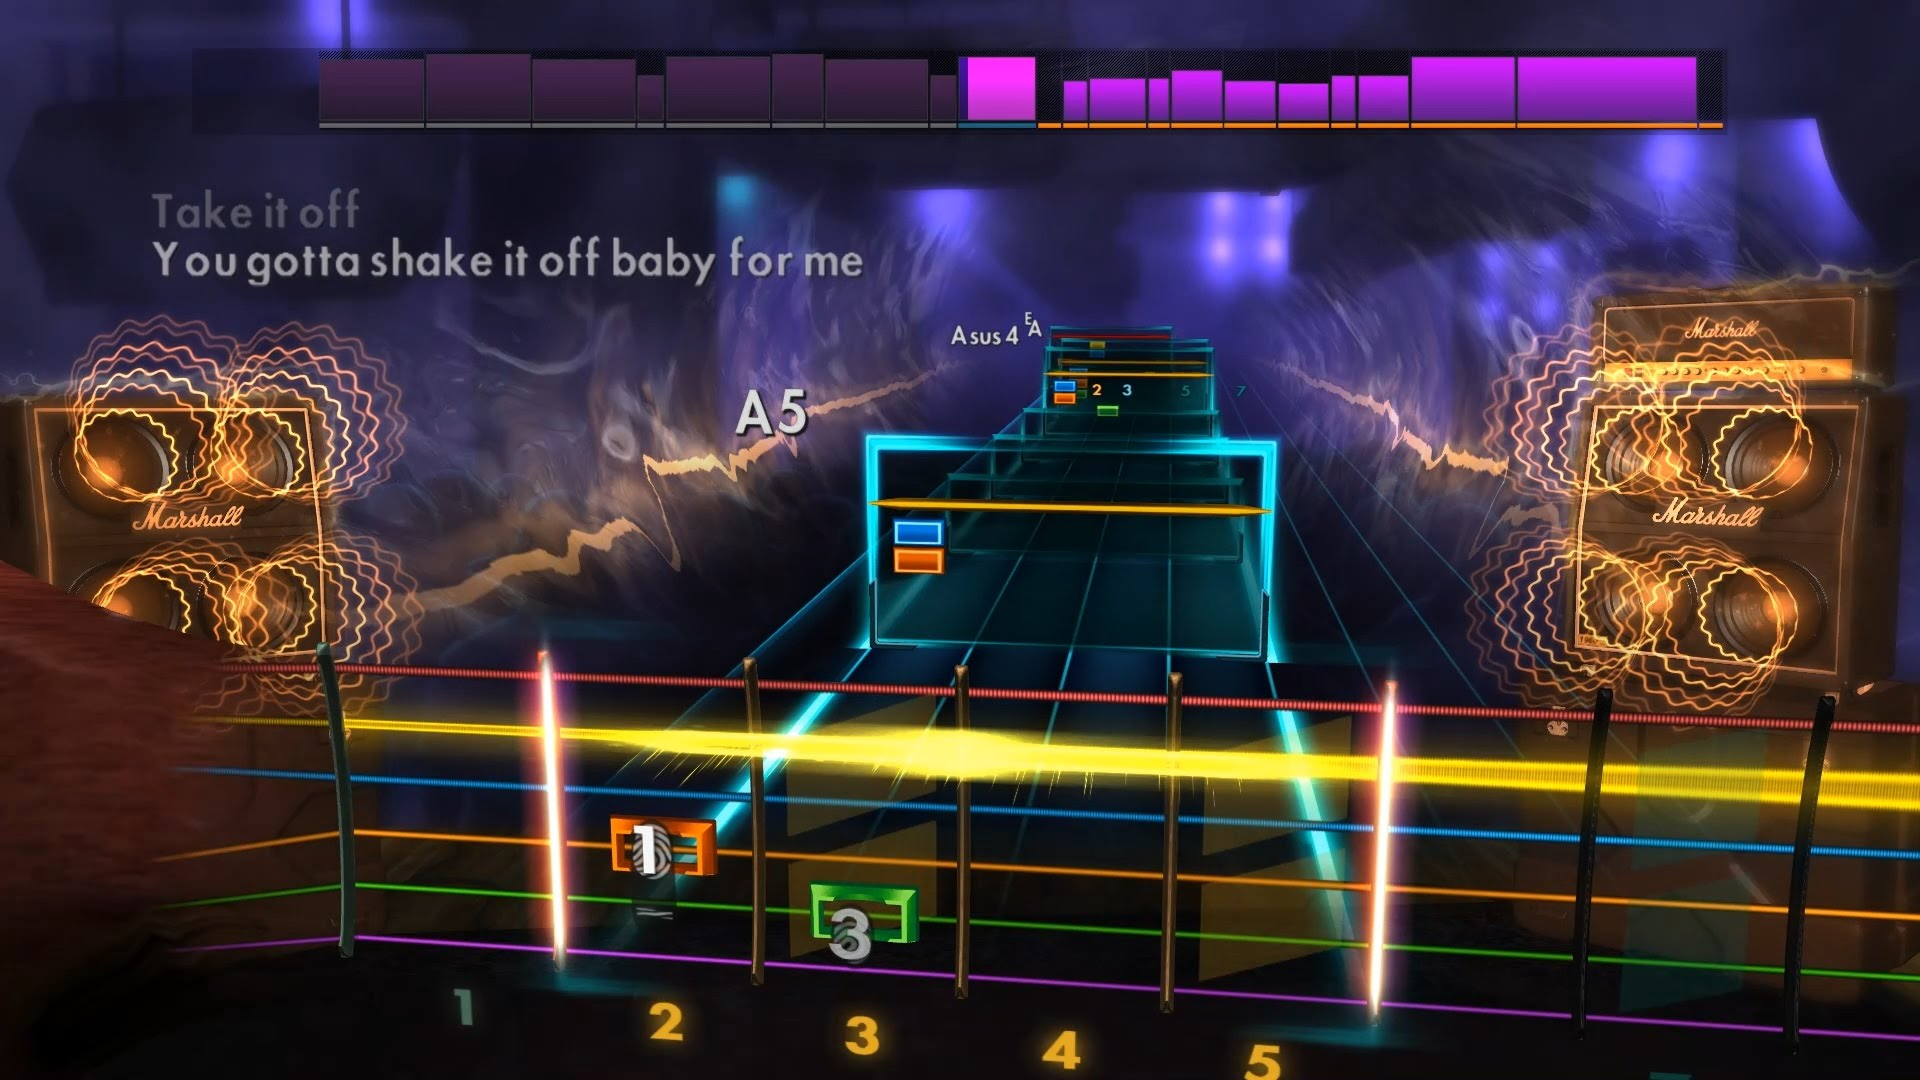 Rocksmith 2014 Edition DLC - Women Who Rock